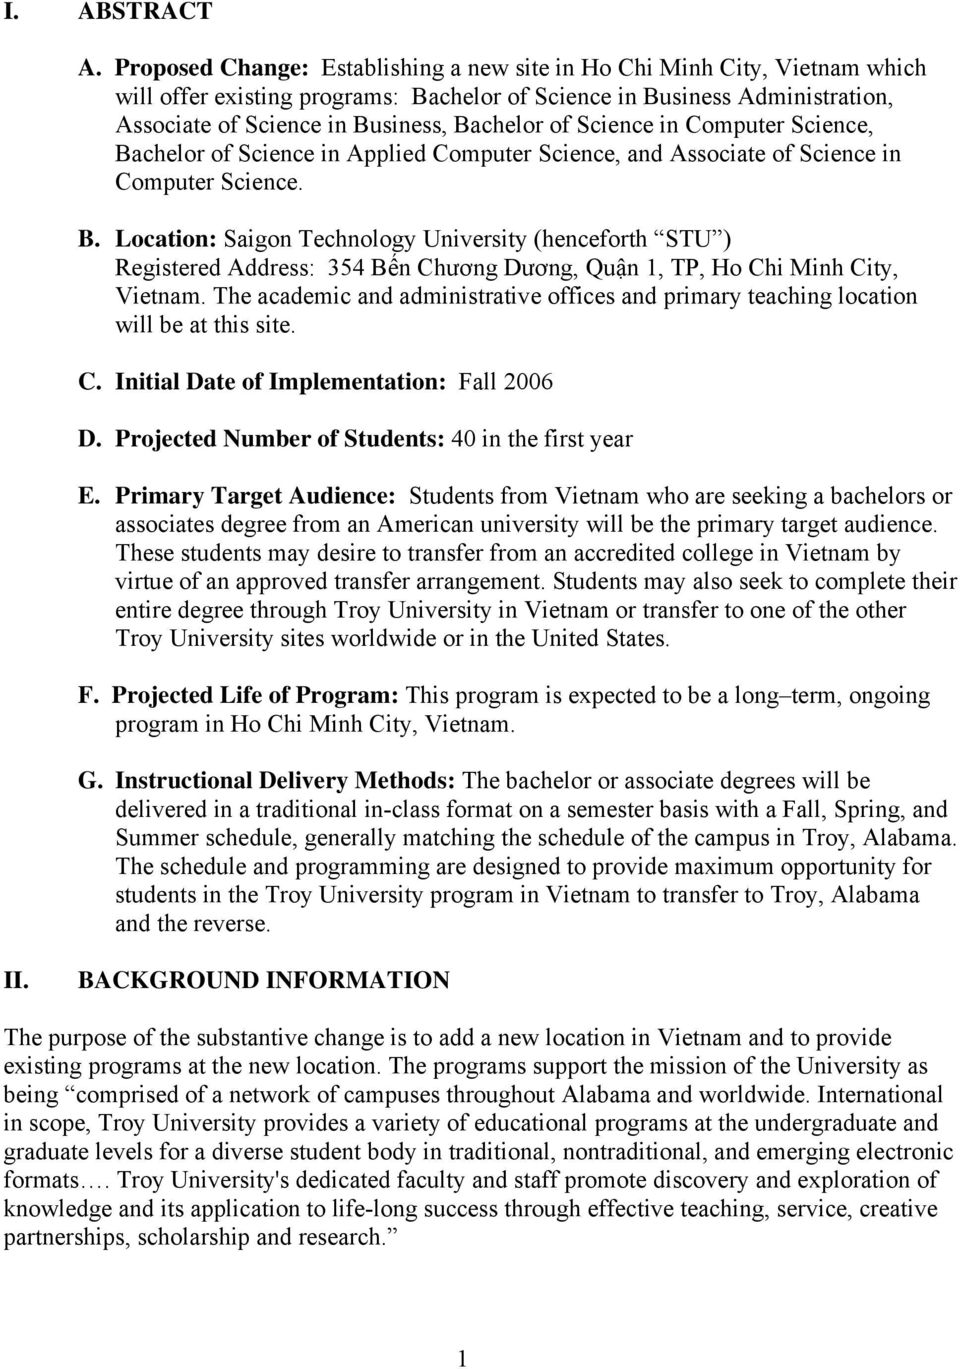 Science in Computer Science, Bachelor of Science in Applied Computer Science, and Associate of Science in Computer Science. B. Location: Saigon Technology University (henceforth STU ) Registered Address: 354 Bến Chương Dương, Quận 1, TP, Ho Chi Minh City, Vietnam.